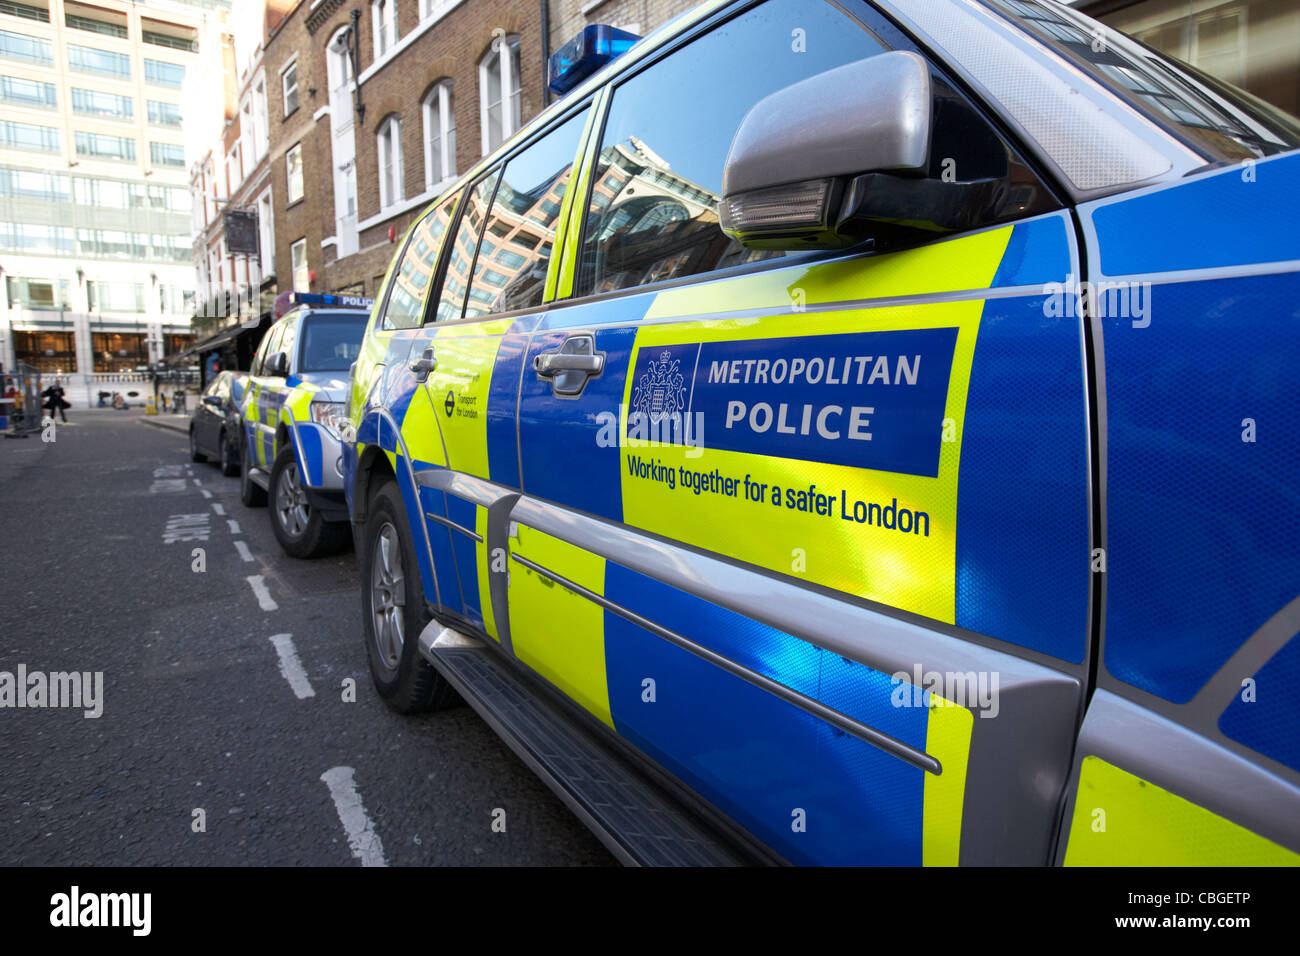 metropolitan police vehicles with battenburg chequered livery parked in reserved onstreet bays london england uk - Stock Image